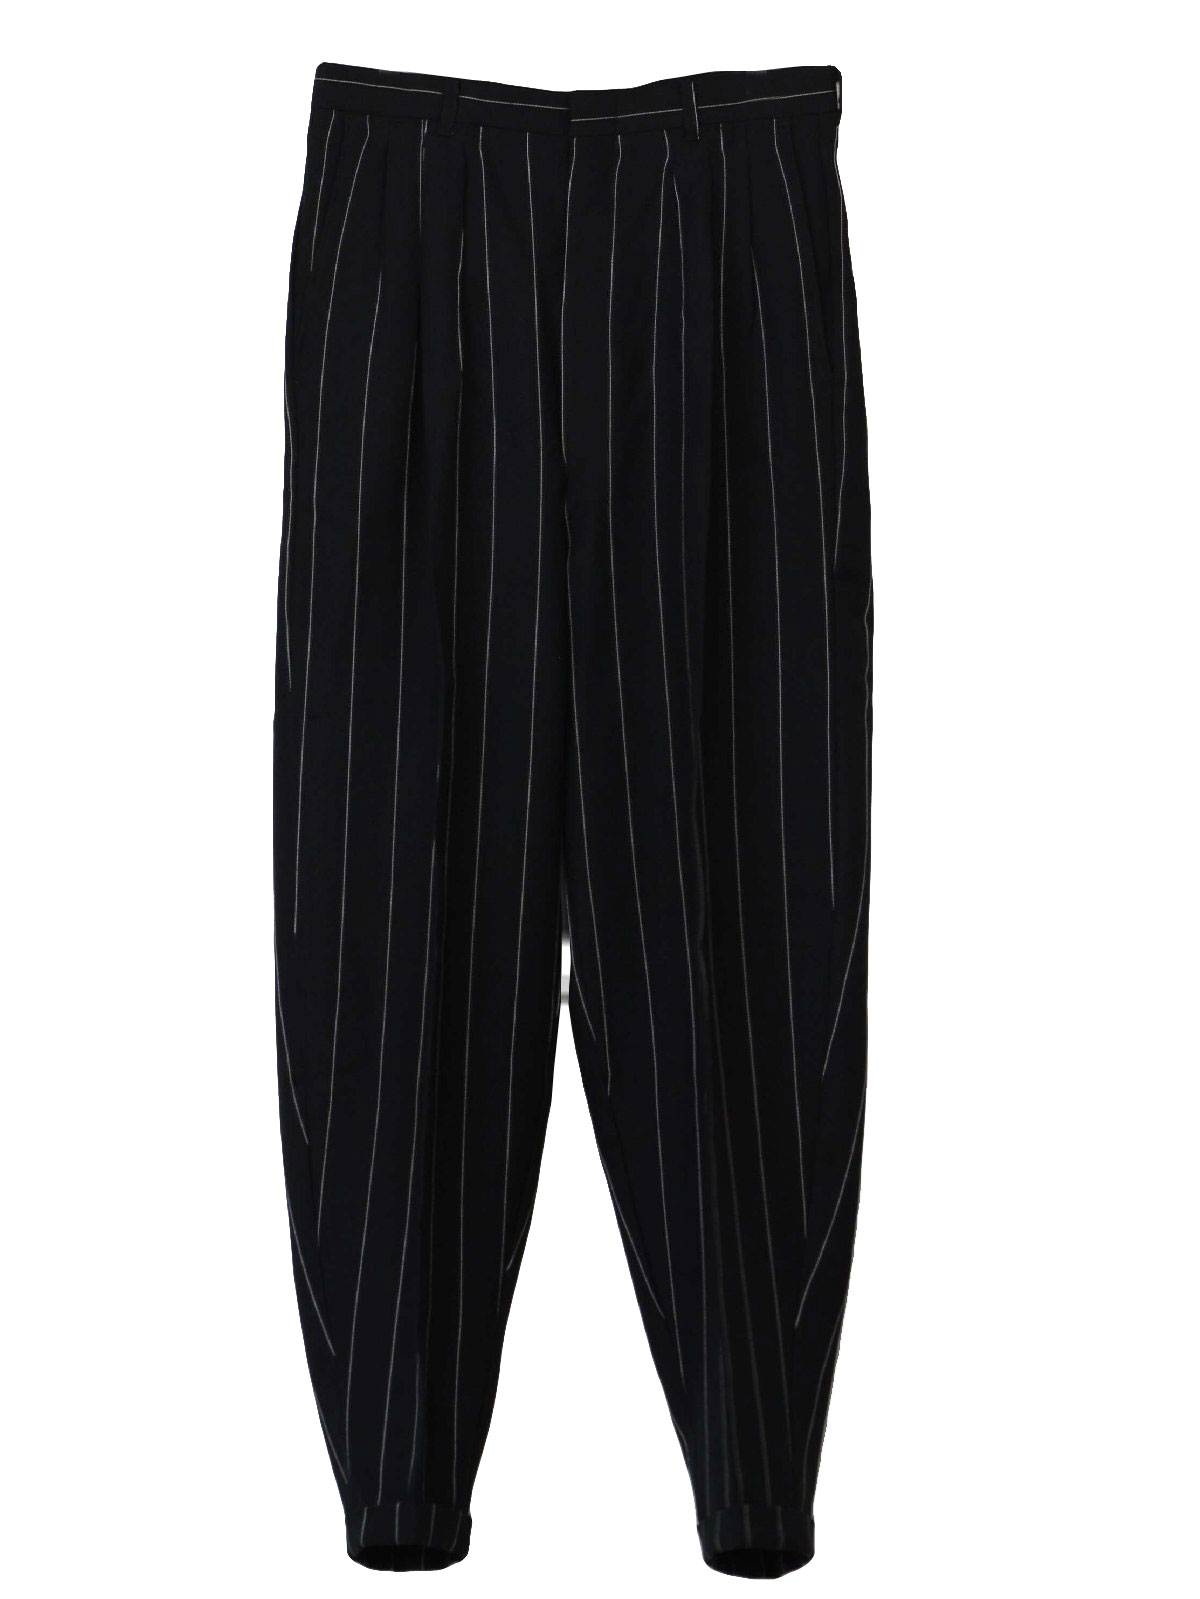 how to find suit pants